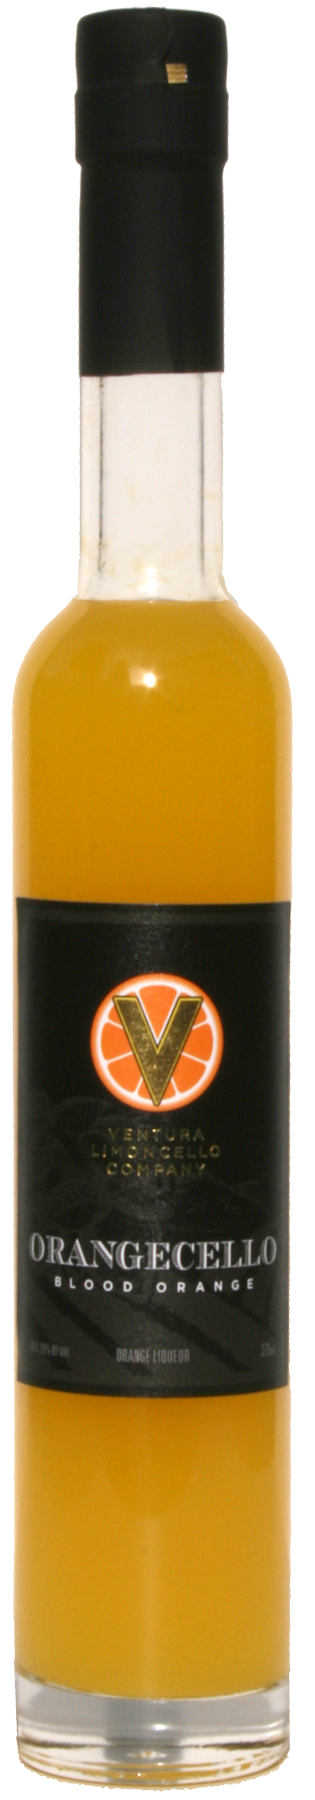 Ventura Orangecello Blood Orange